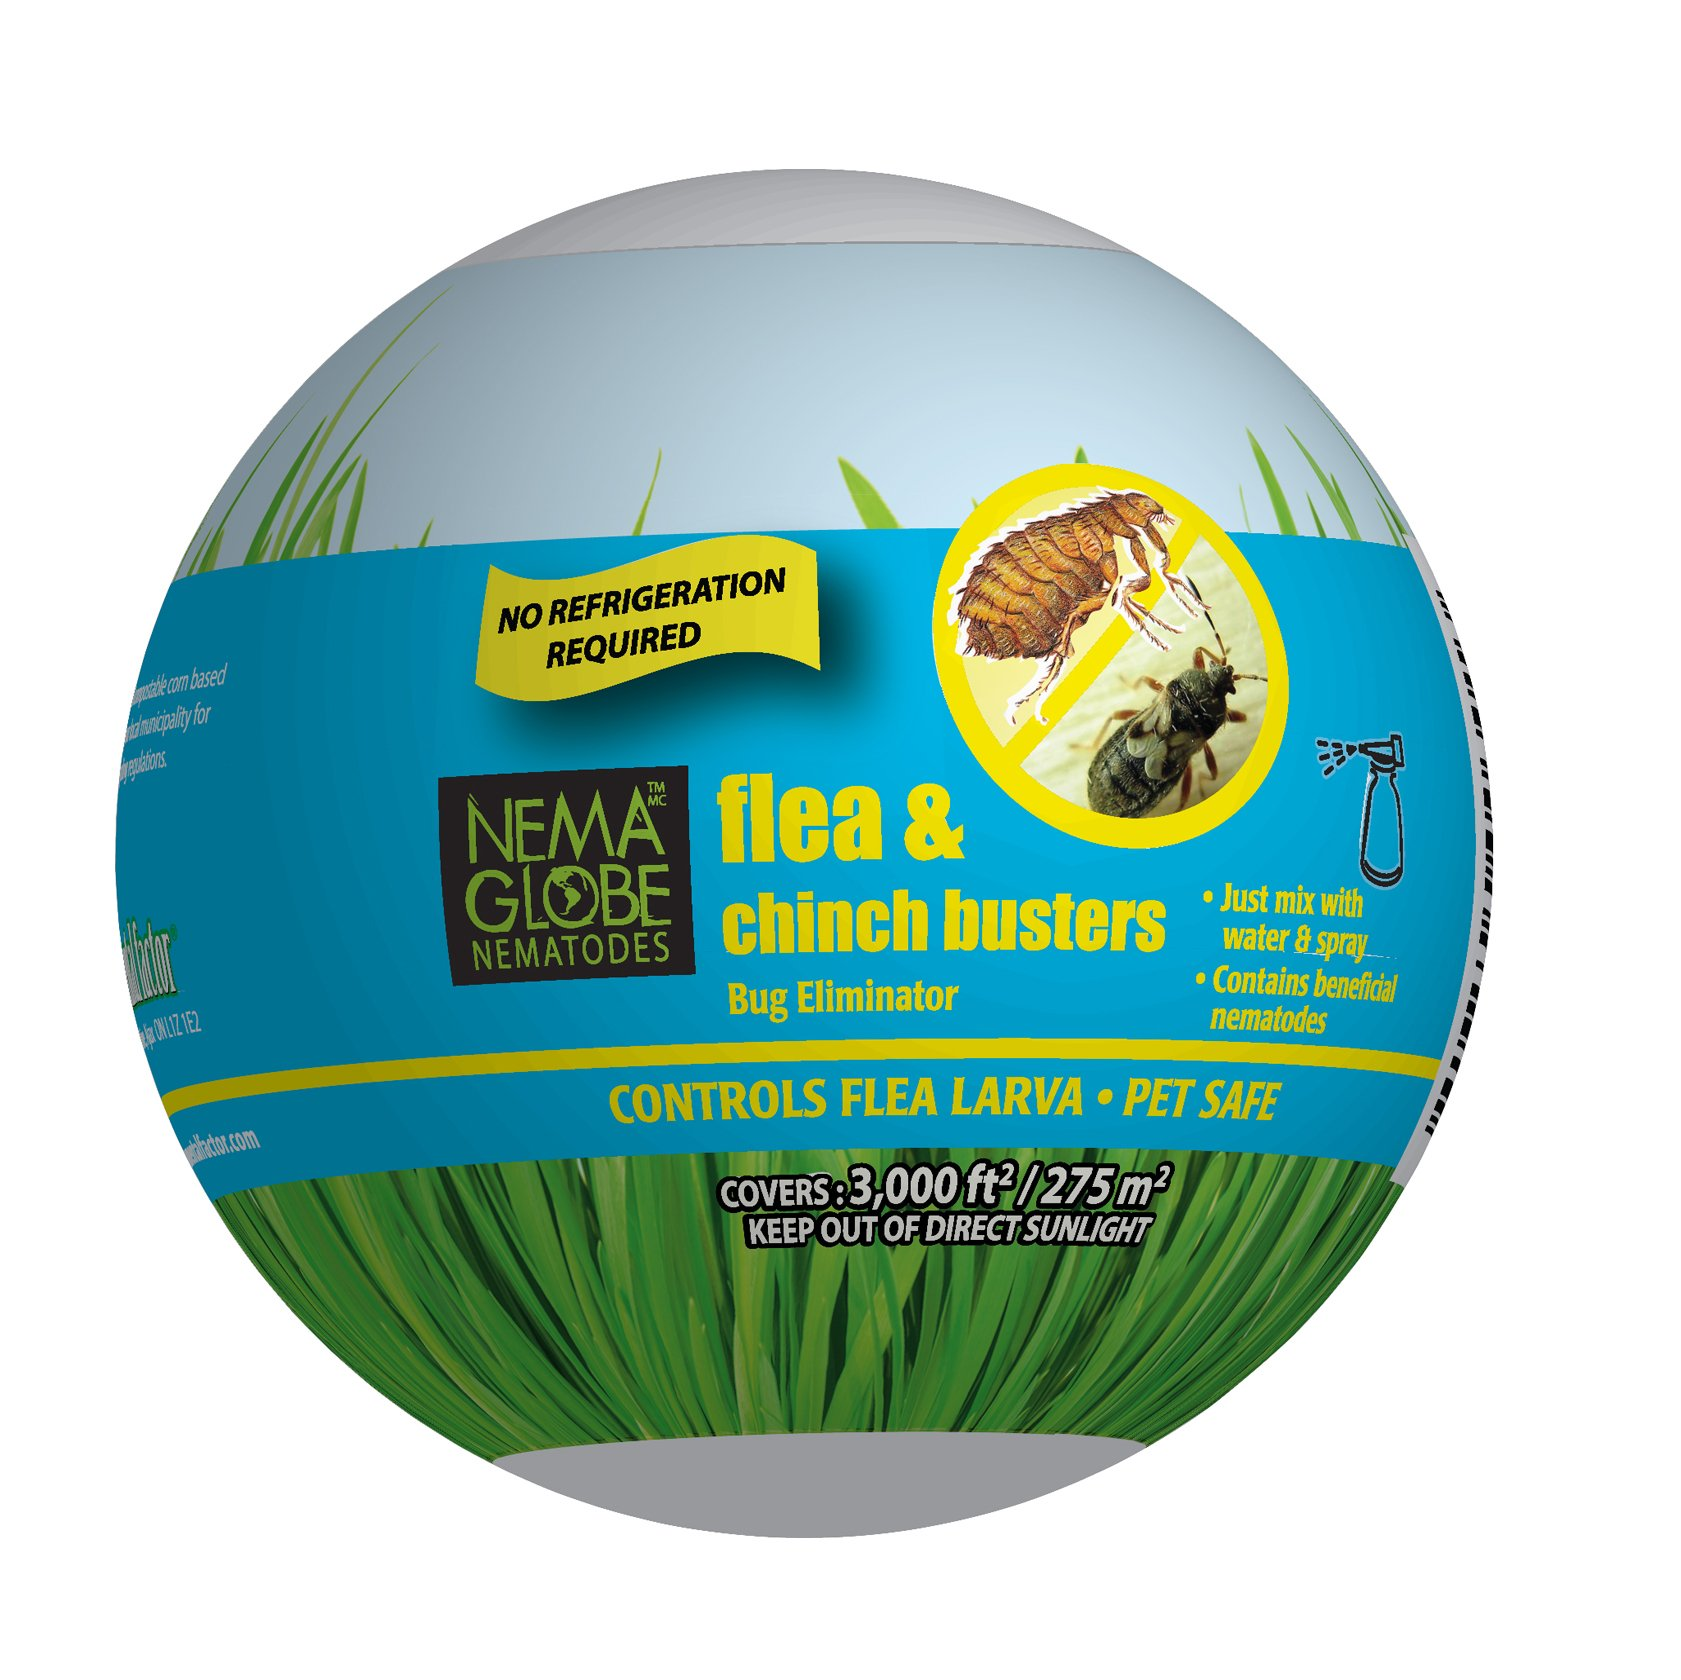 Nema Globe 100 Million Nematodes (Sc) - Flea Buster for Pest Control - New No Refrigeration Required Formula by Nemaglobe